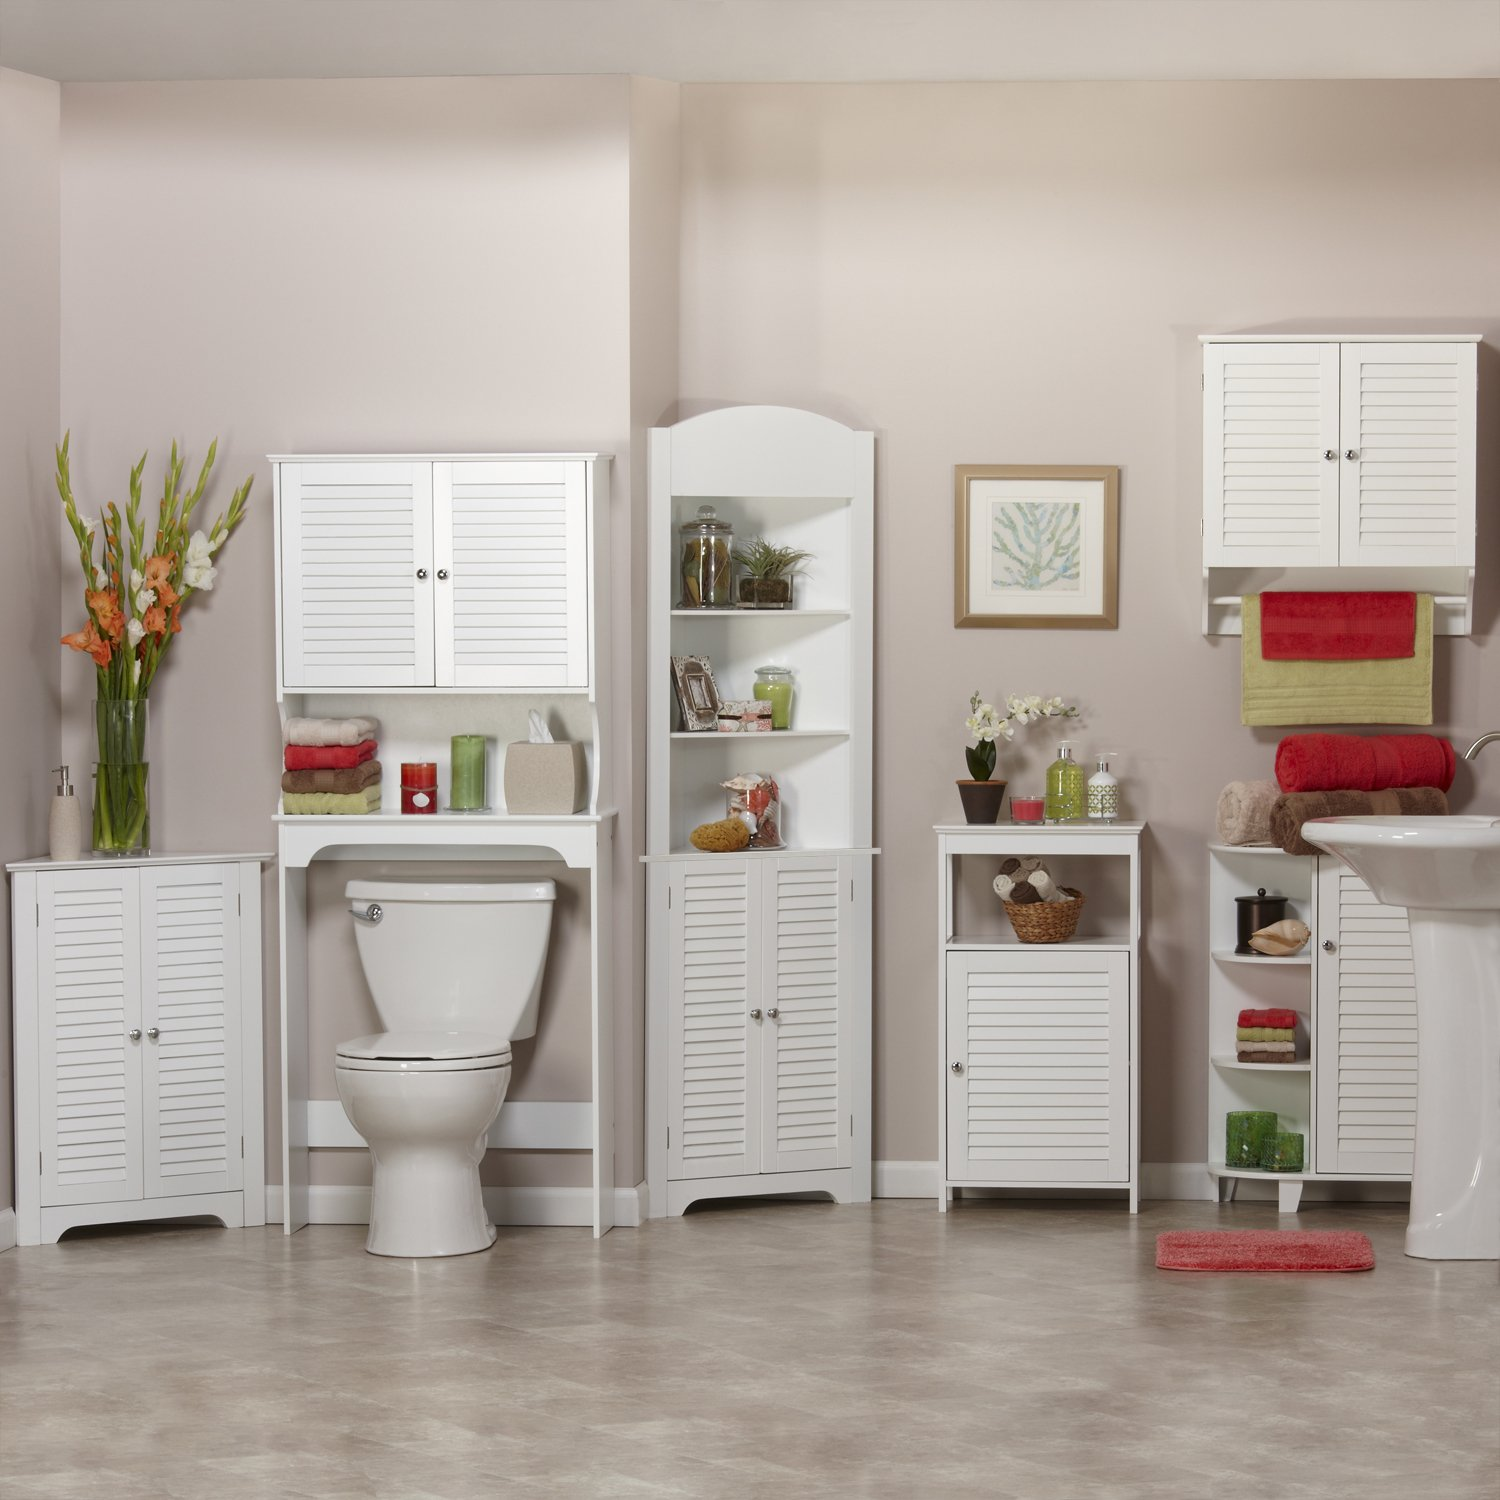 RiverRidge Ellsworth Collection Floor Cabinet with Side Shelves, White by RiverRidge Home Products (Image #3)